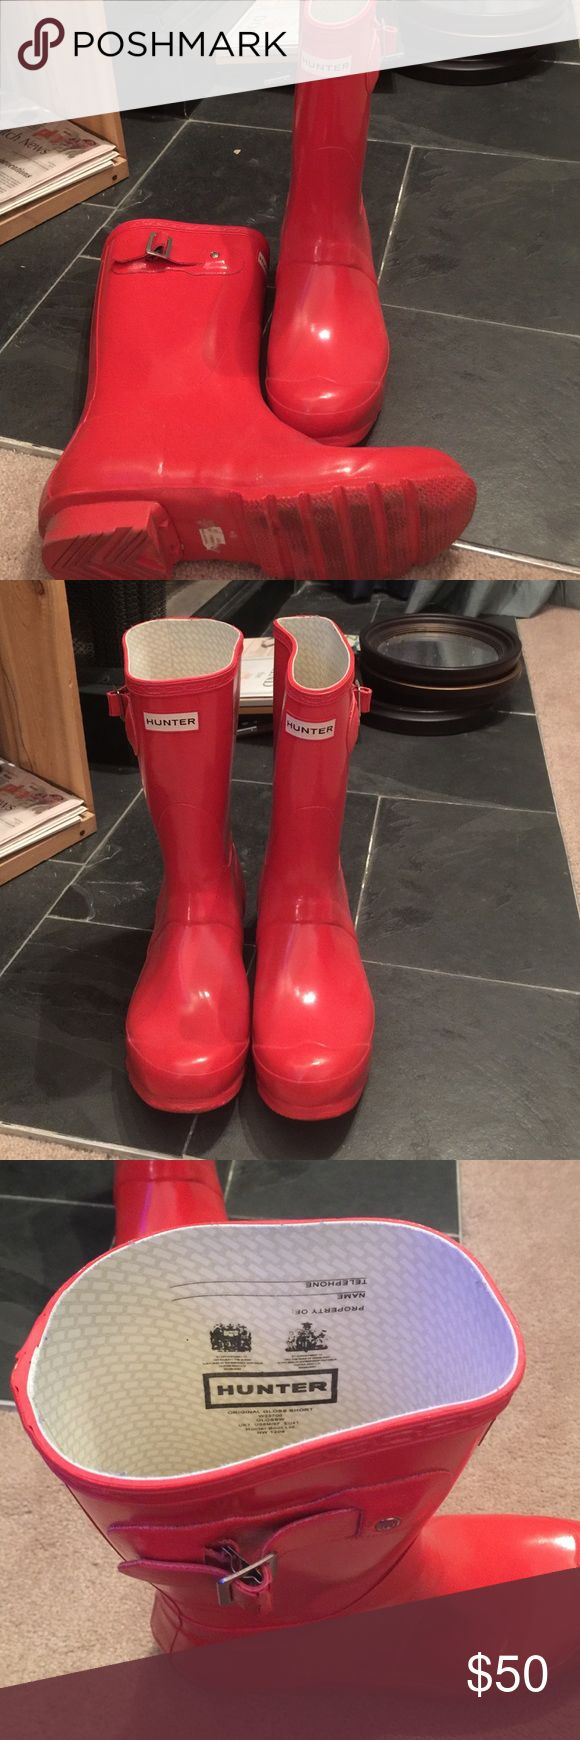 Hunter wellies short. Gloss red. Size 9 women's Had a couple years. Not worn frequently. No damages markings. Rubber on clip cracking. (See photo) priced to sell. Thank you! Hunter Boots Shoes Winter & Rain Boots